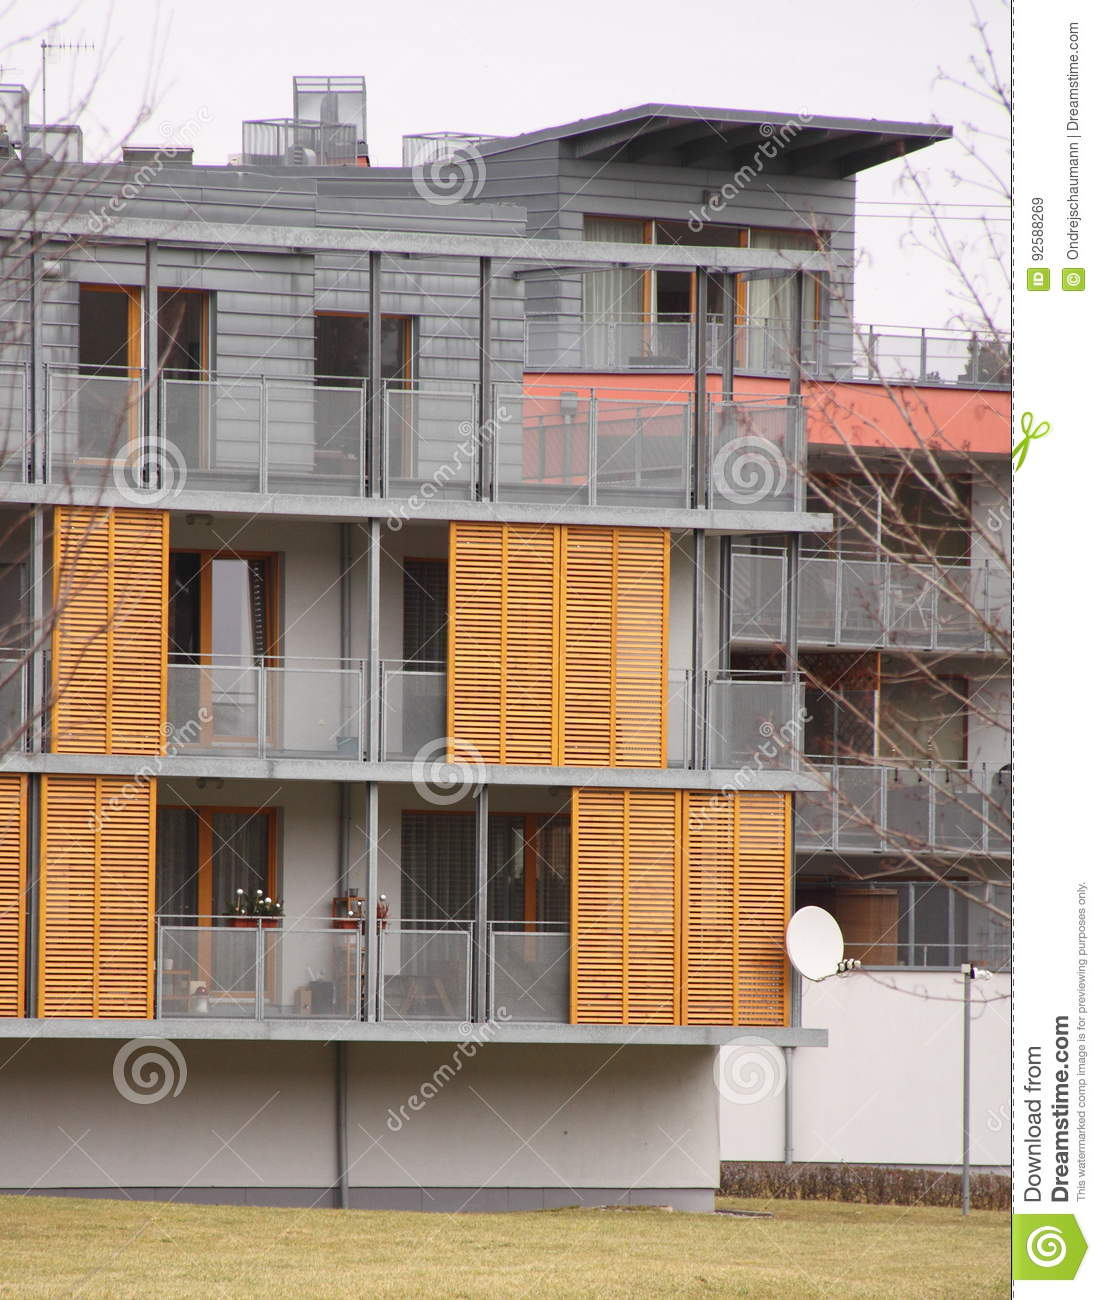 Detail Of Modern House Facade With Wooden Shades Stock Image - Image